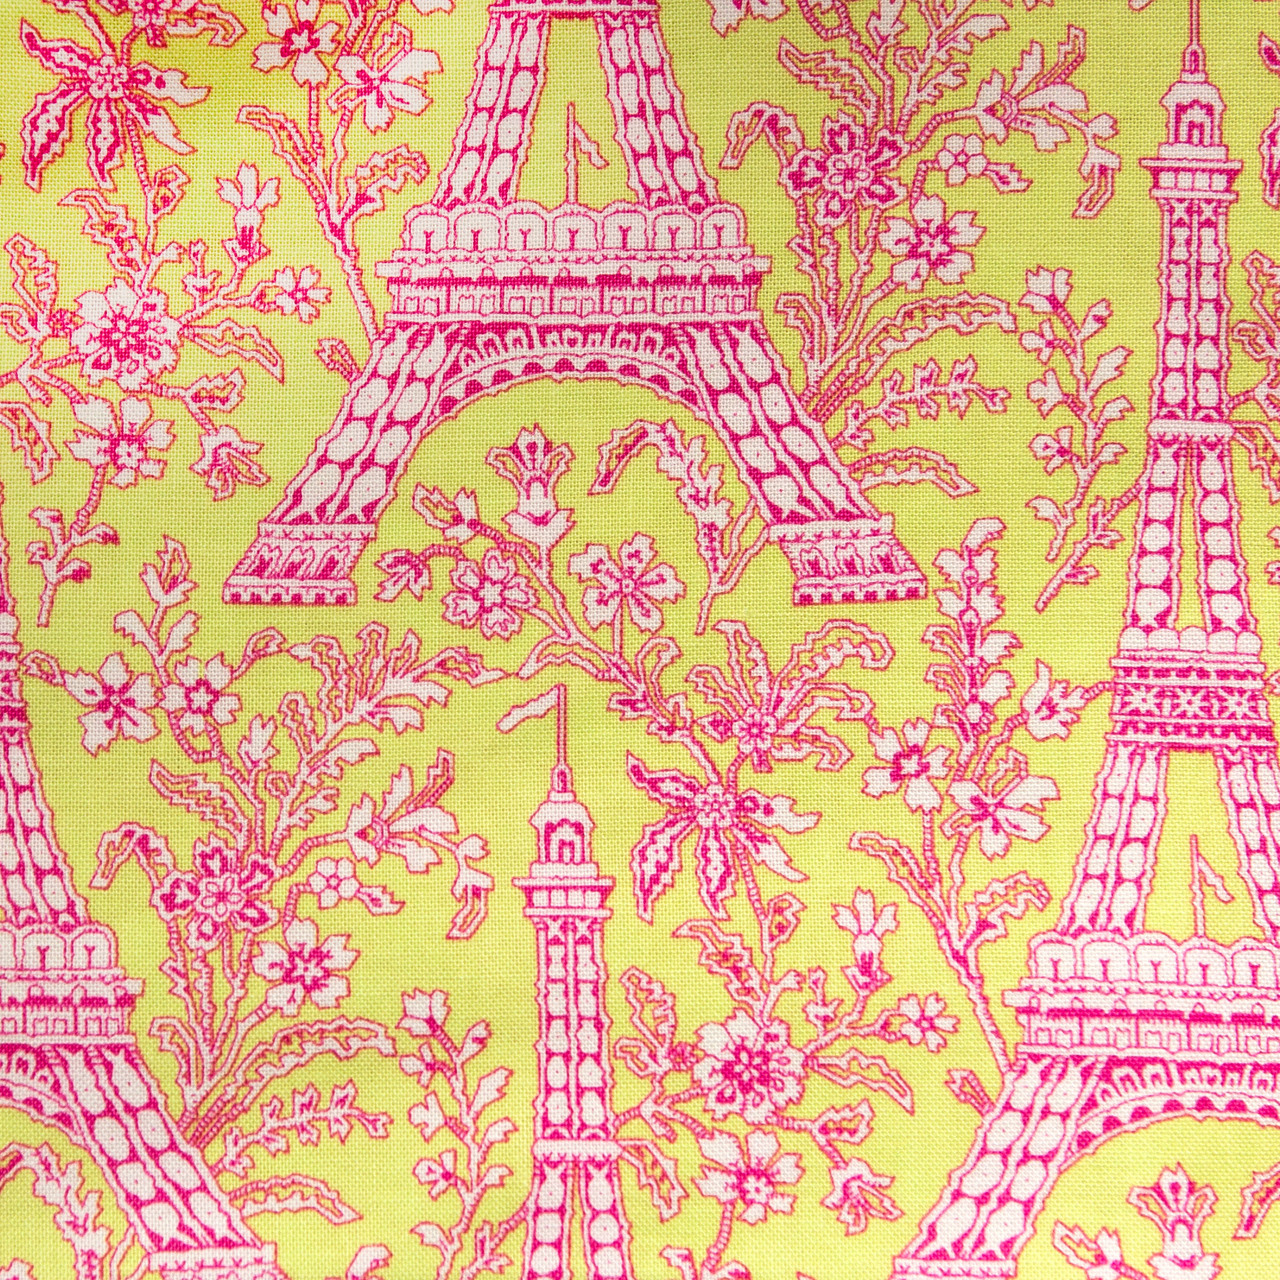 Paris Blast print